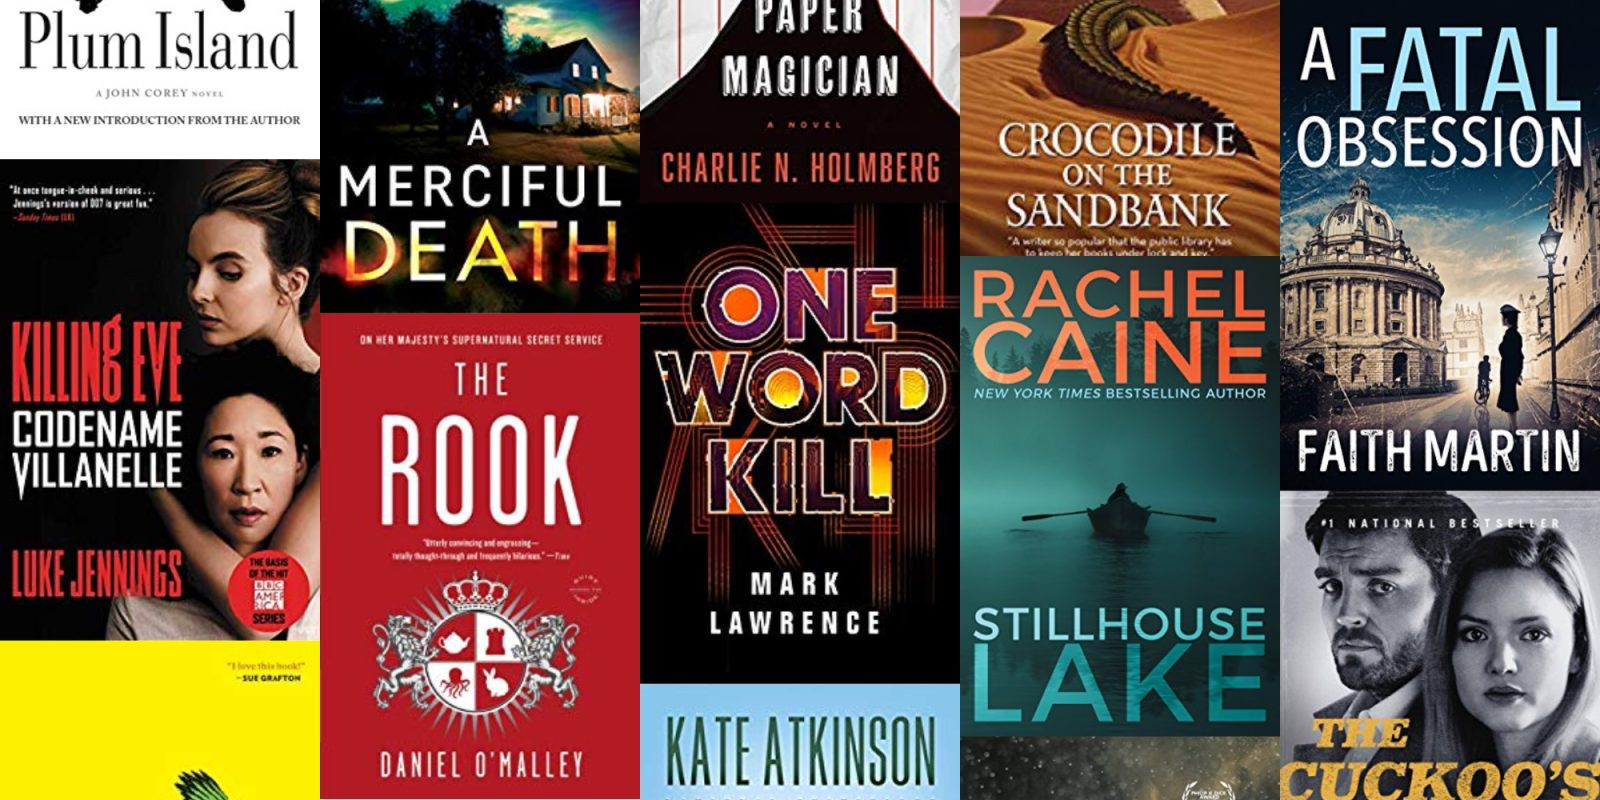 Get hooked on a new series with today's Amazon Kindle eBook sale from $1